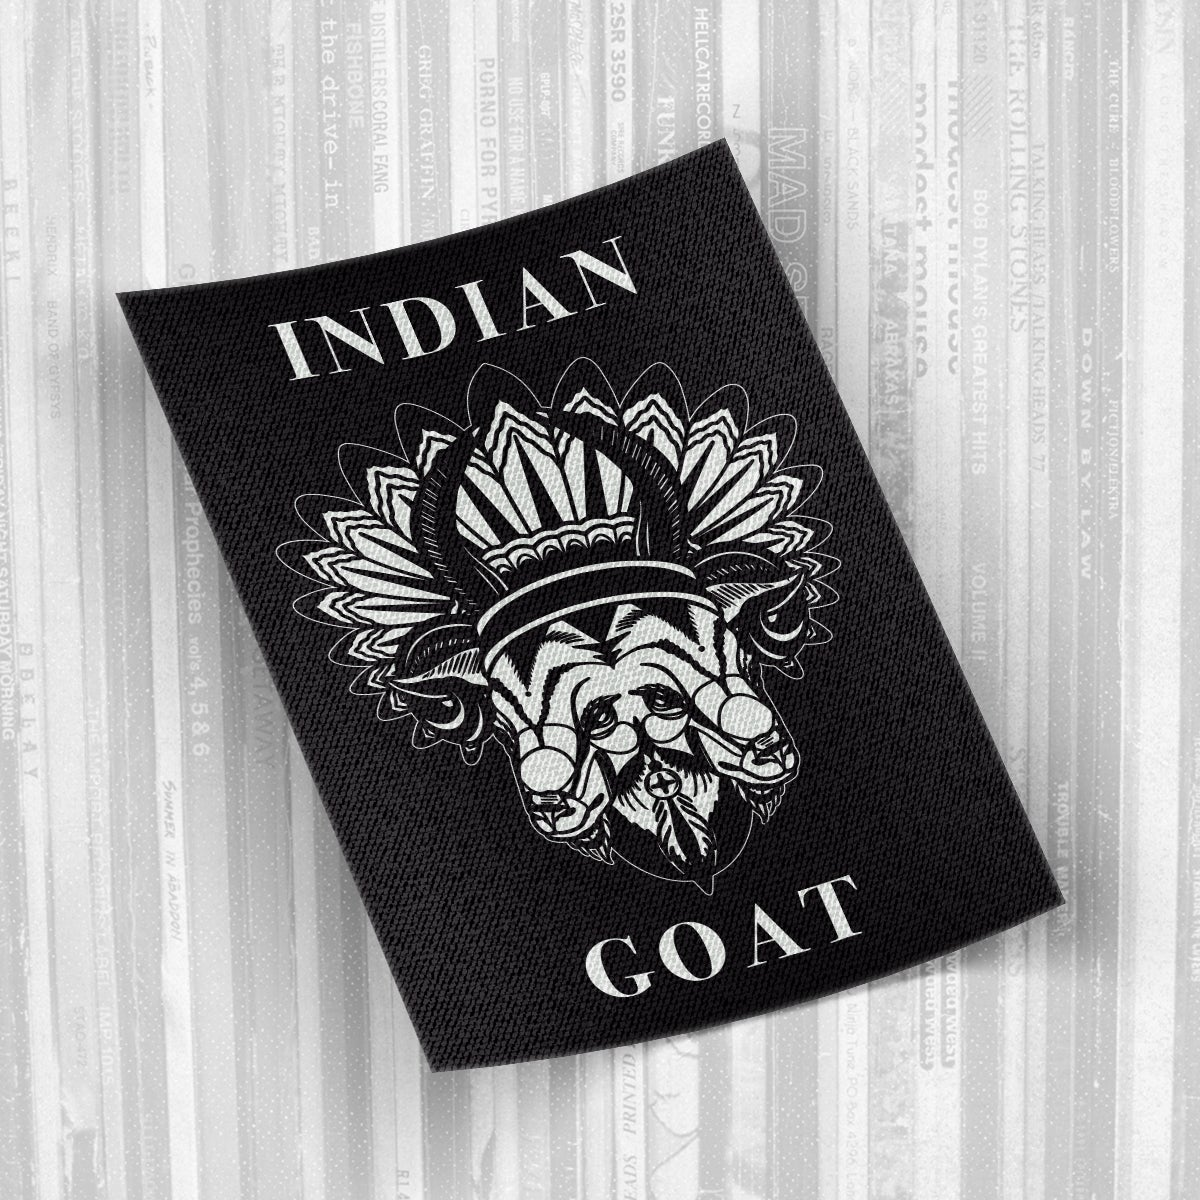 Indian Goat - Logo Canvas patch